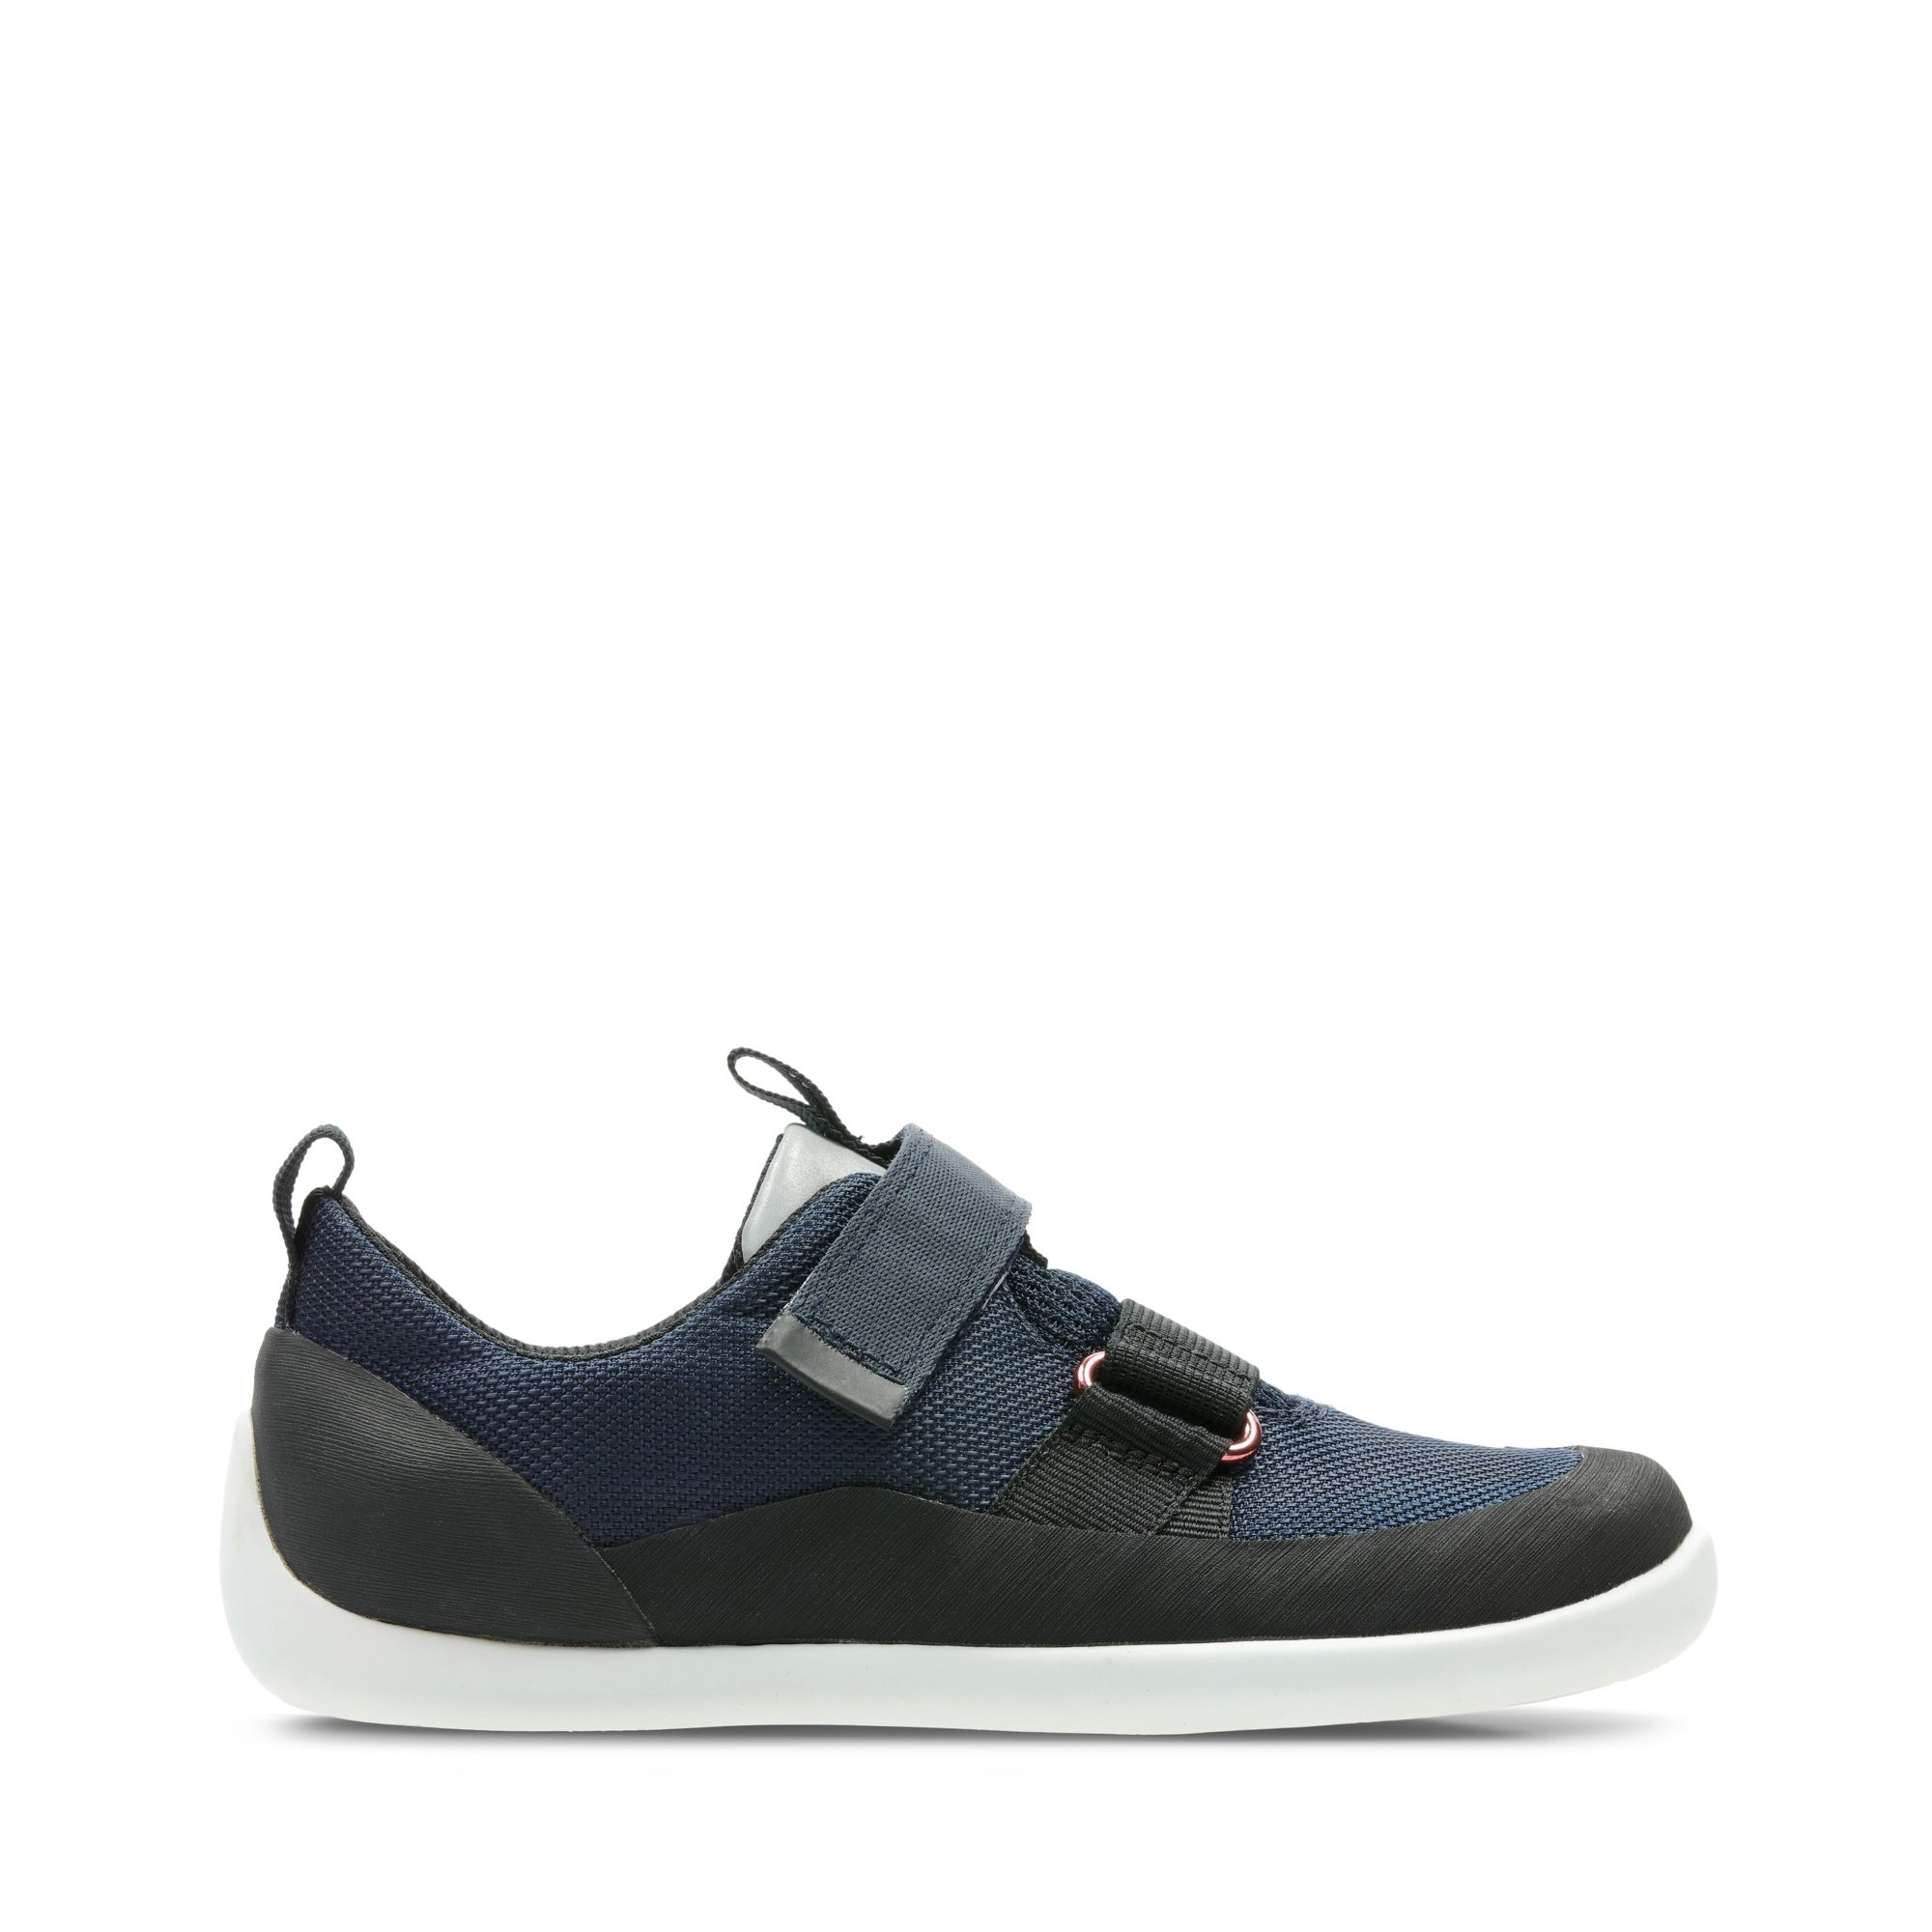 Clarks Play Pioneer - Navy Synthetic - Childrens 9